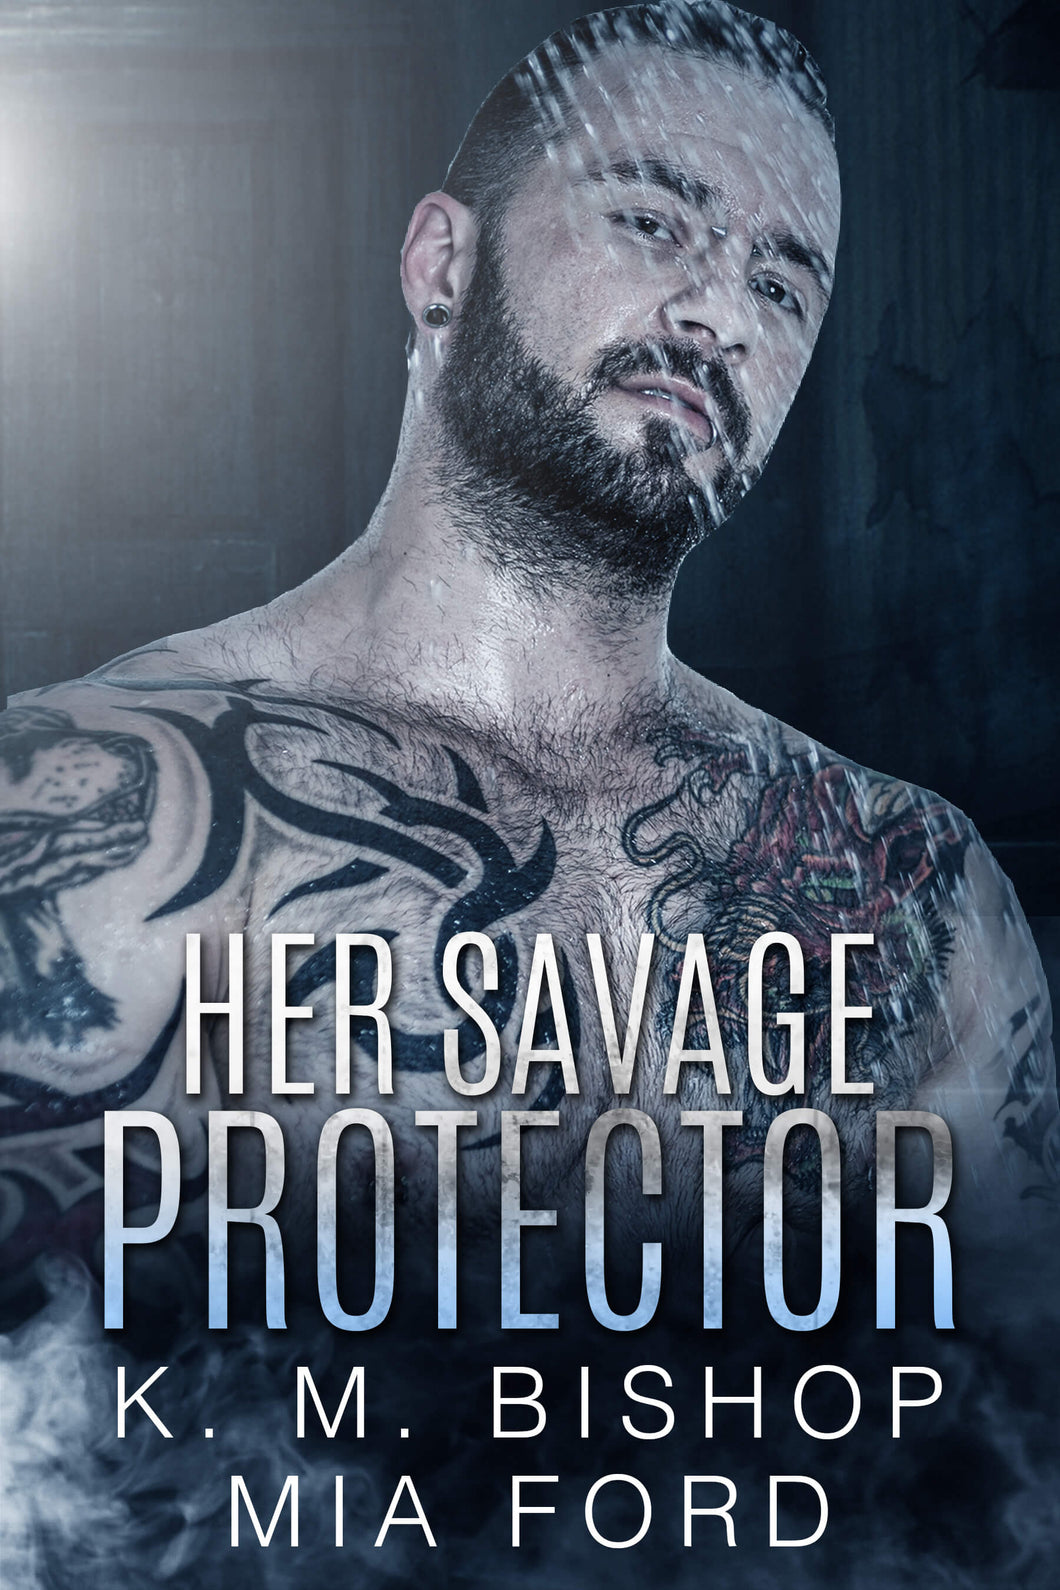 Her Savage Protector